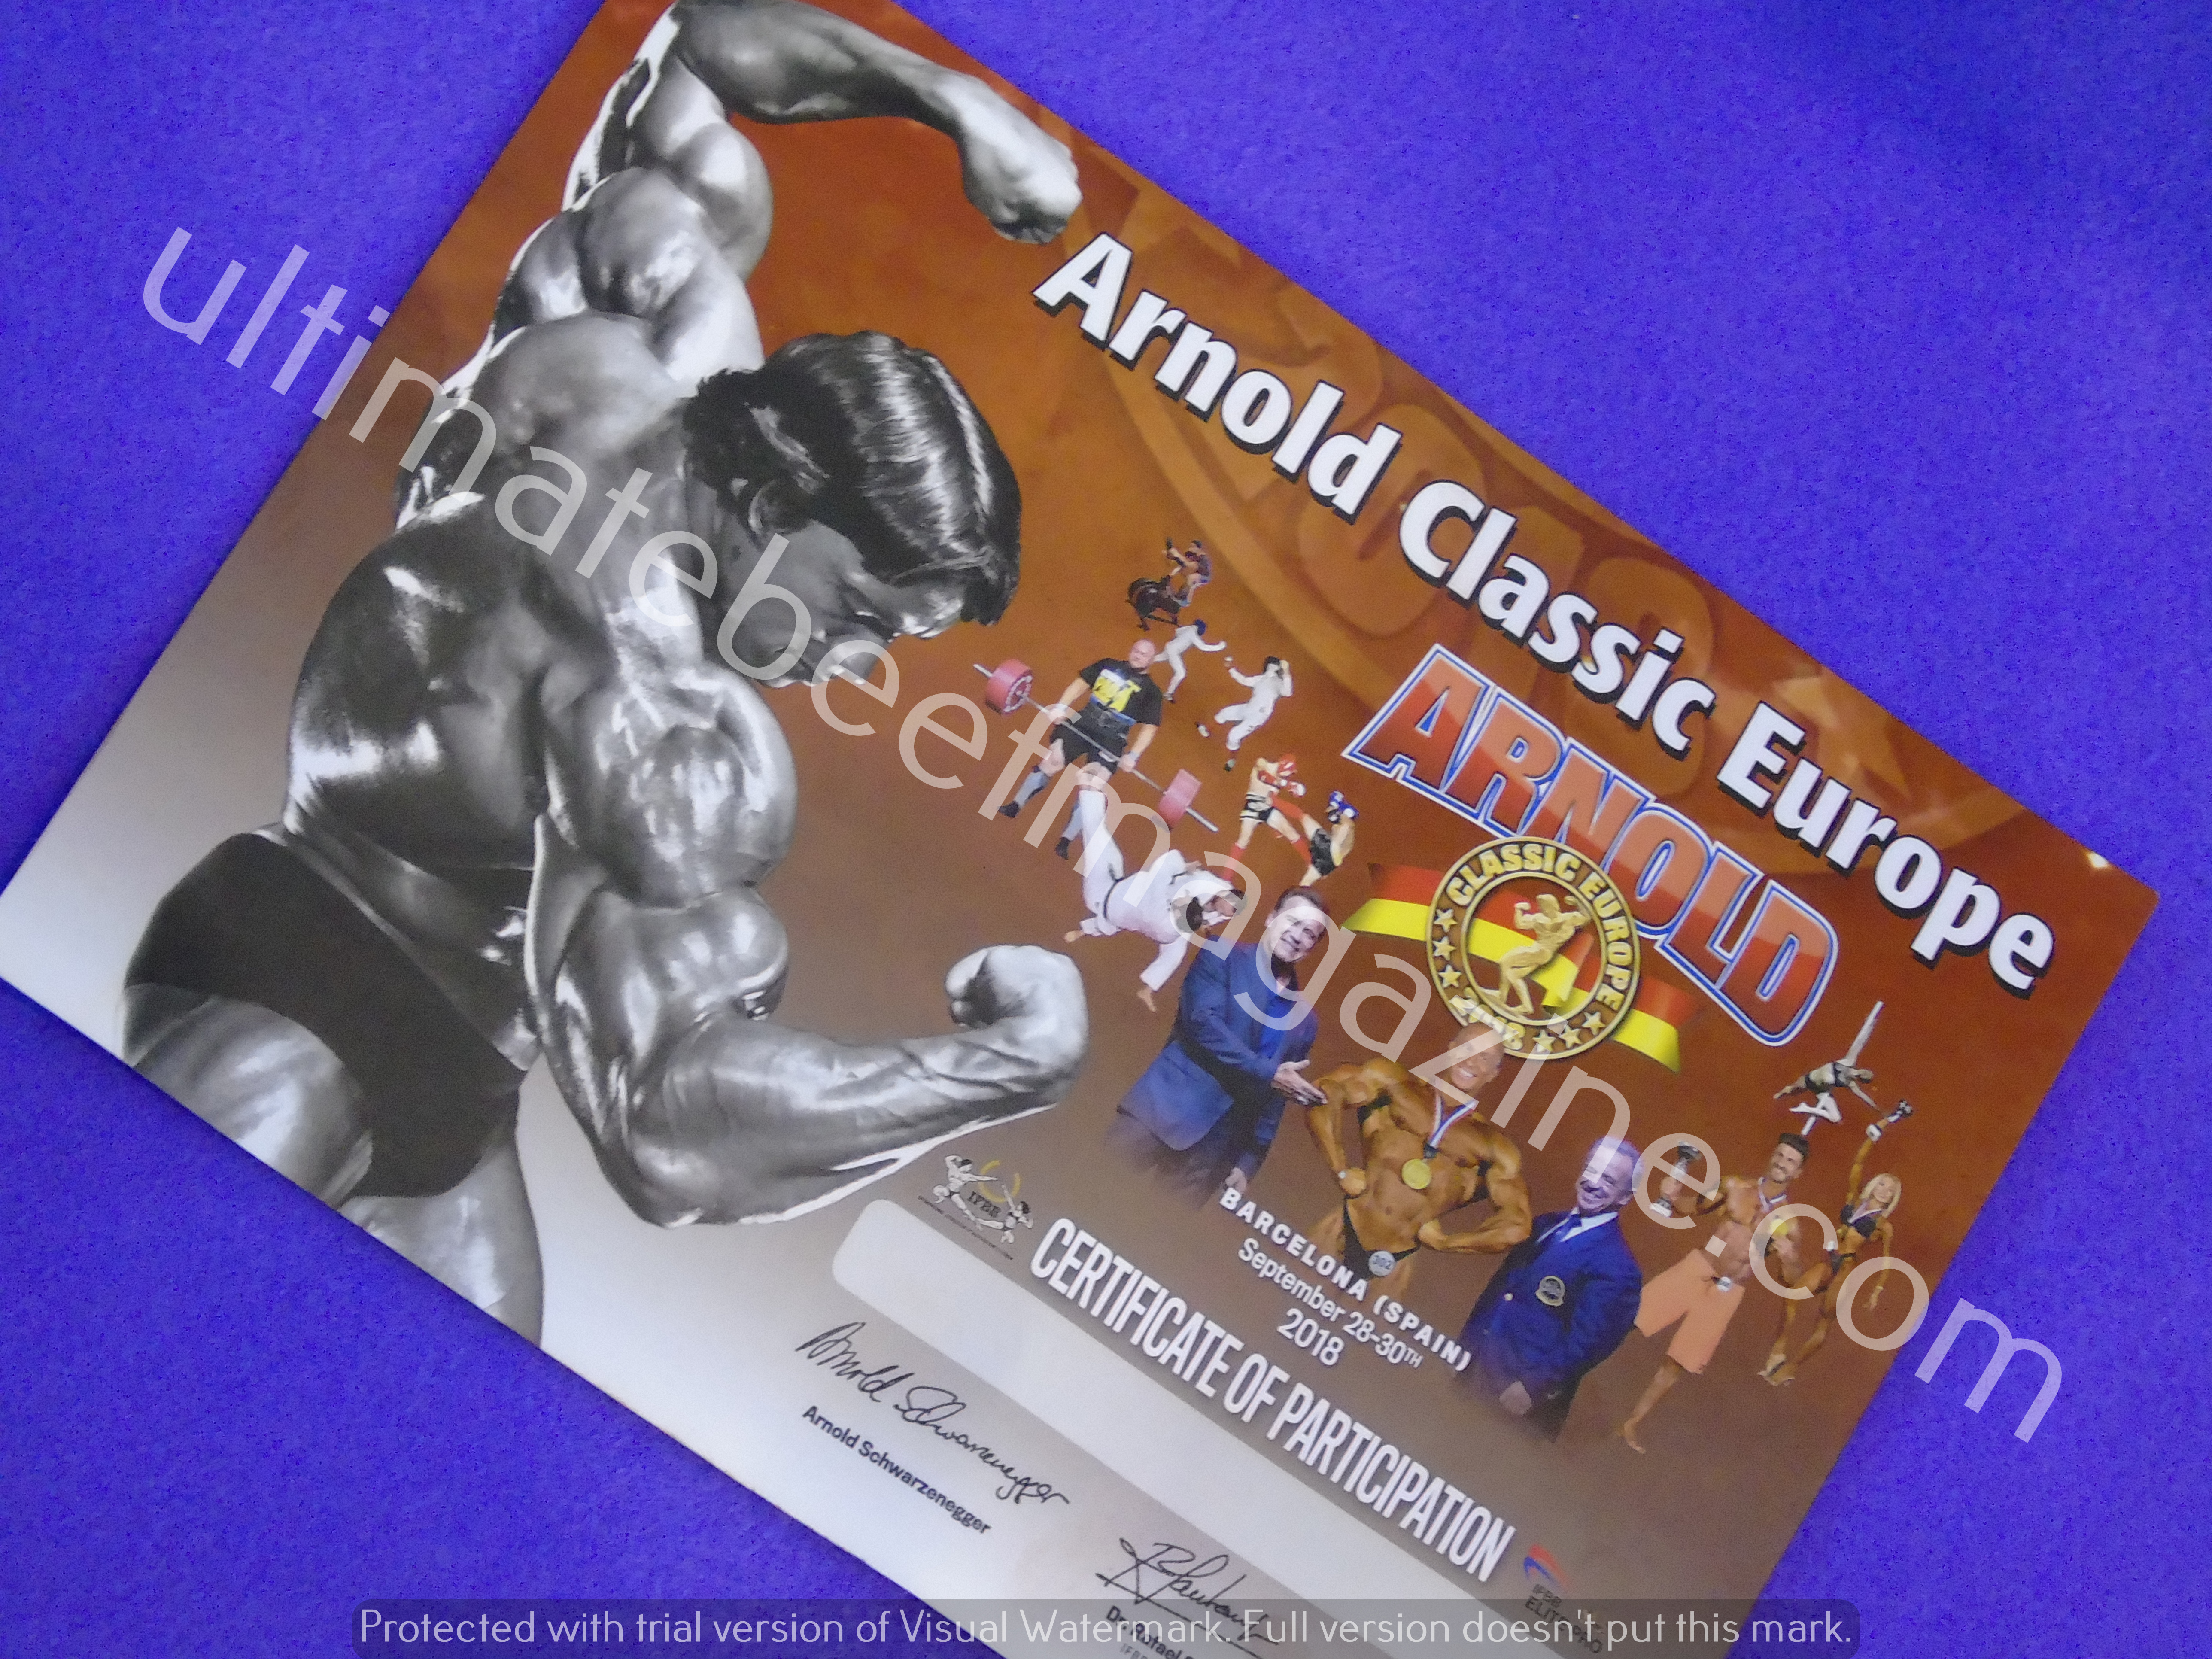 2018 arnold classic europe by underbody2018 arnold classic europe by underbody